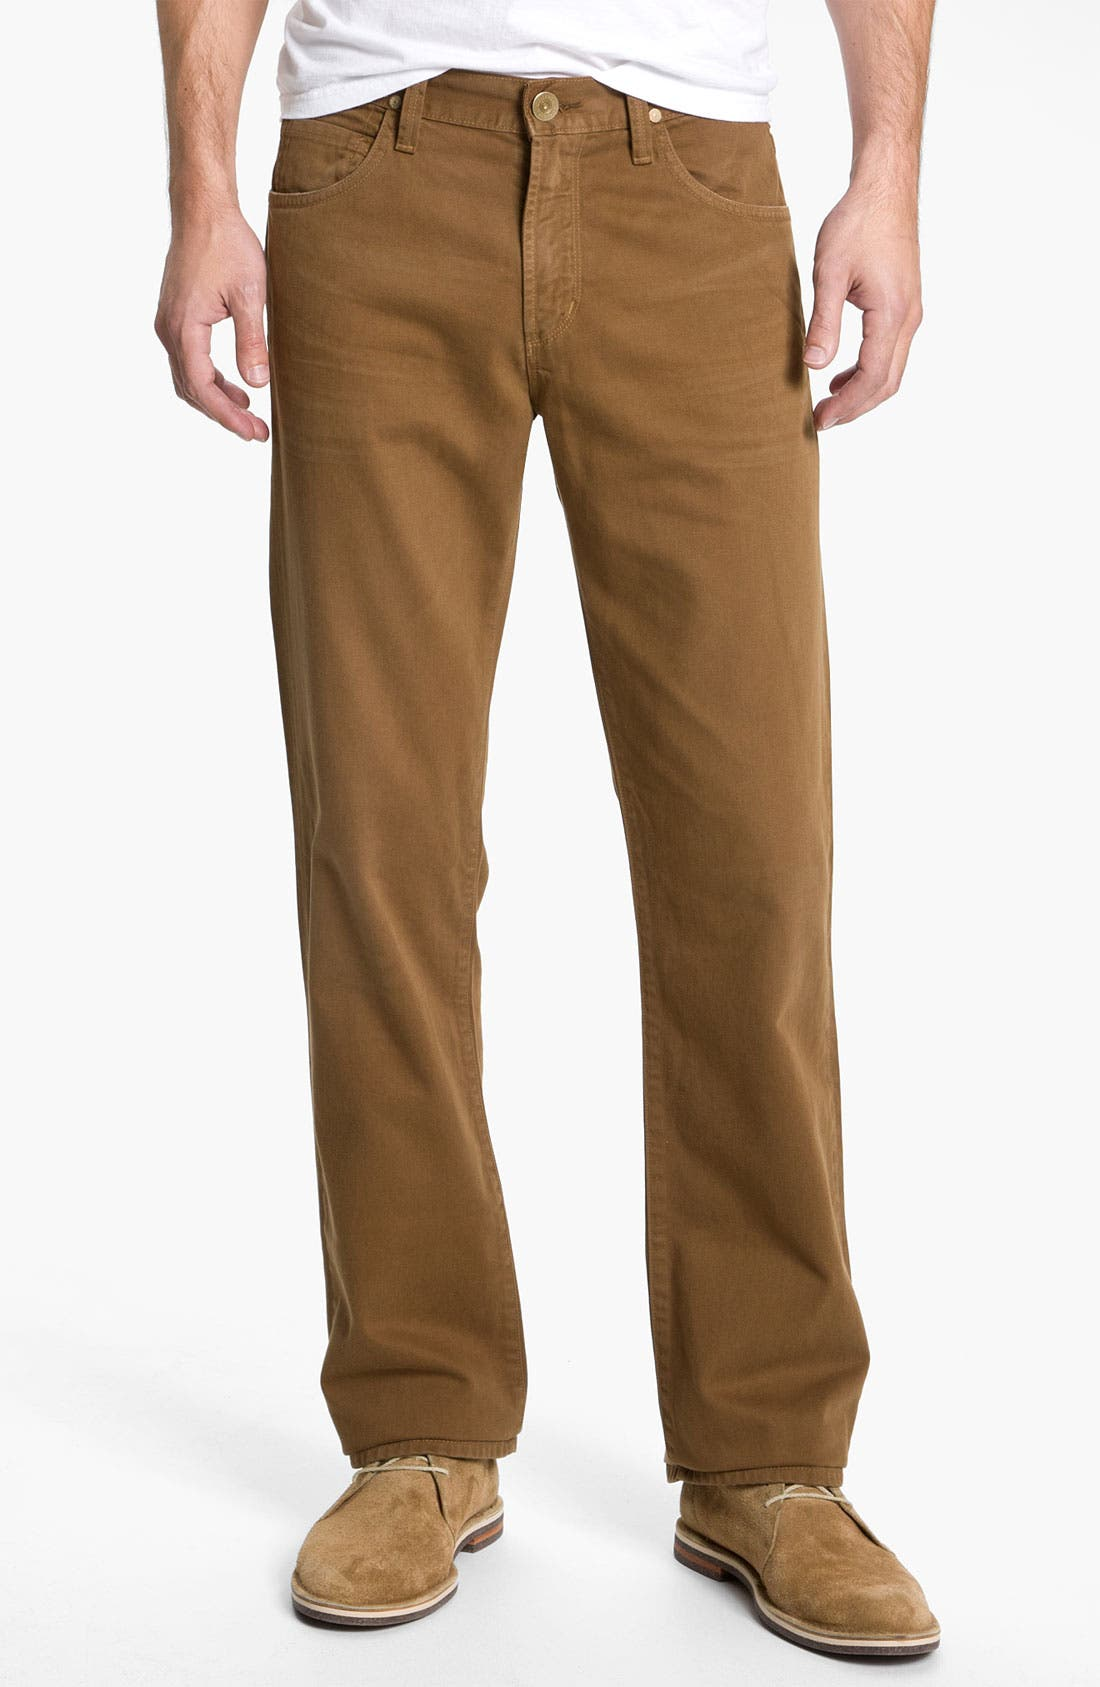 Alternate Image 1 Selected - Citizens of Humanity 'Sid' Straight Leg Pants